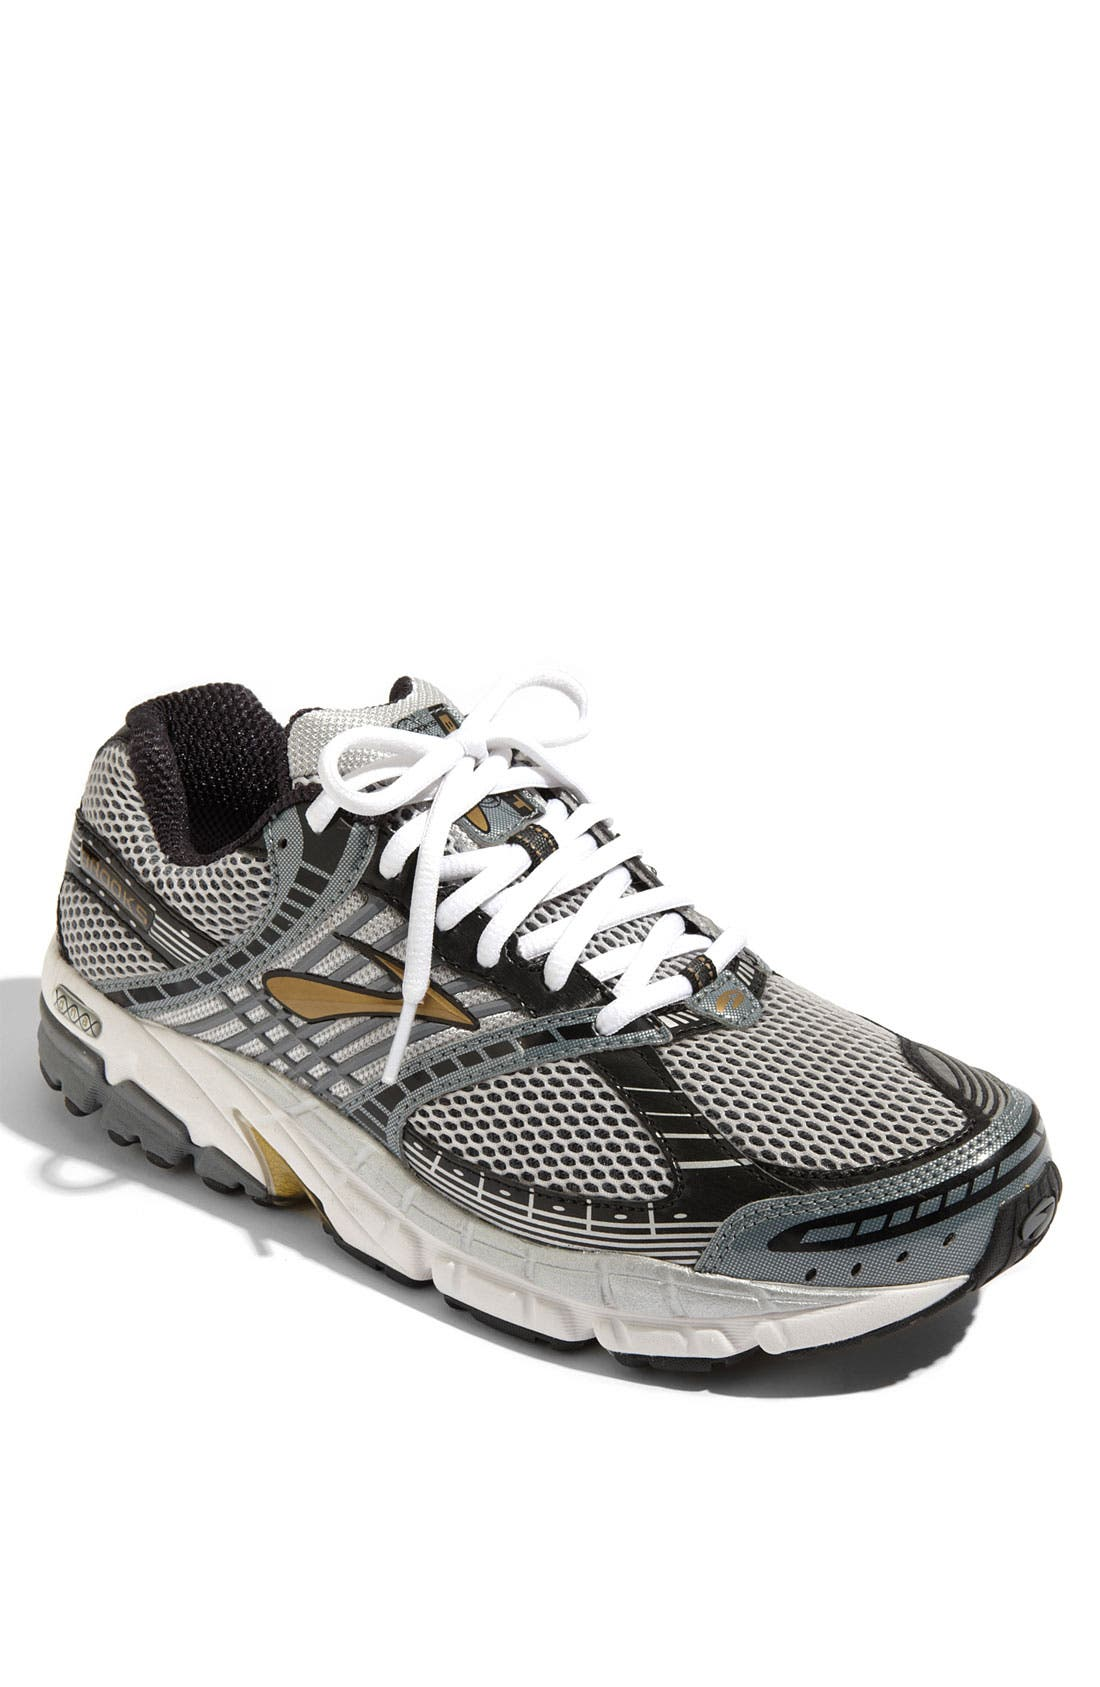 Main Image - Brooks 'Beast' Running Shoe (Men)